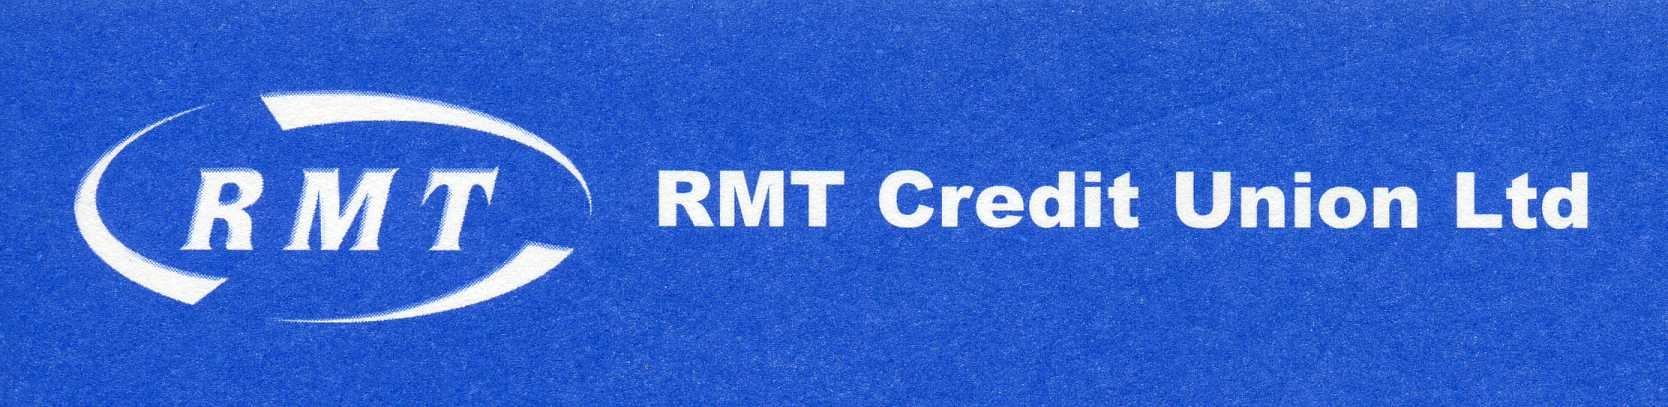 RMT Credit Union Blue Logo